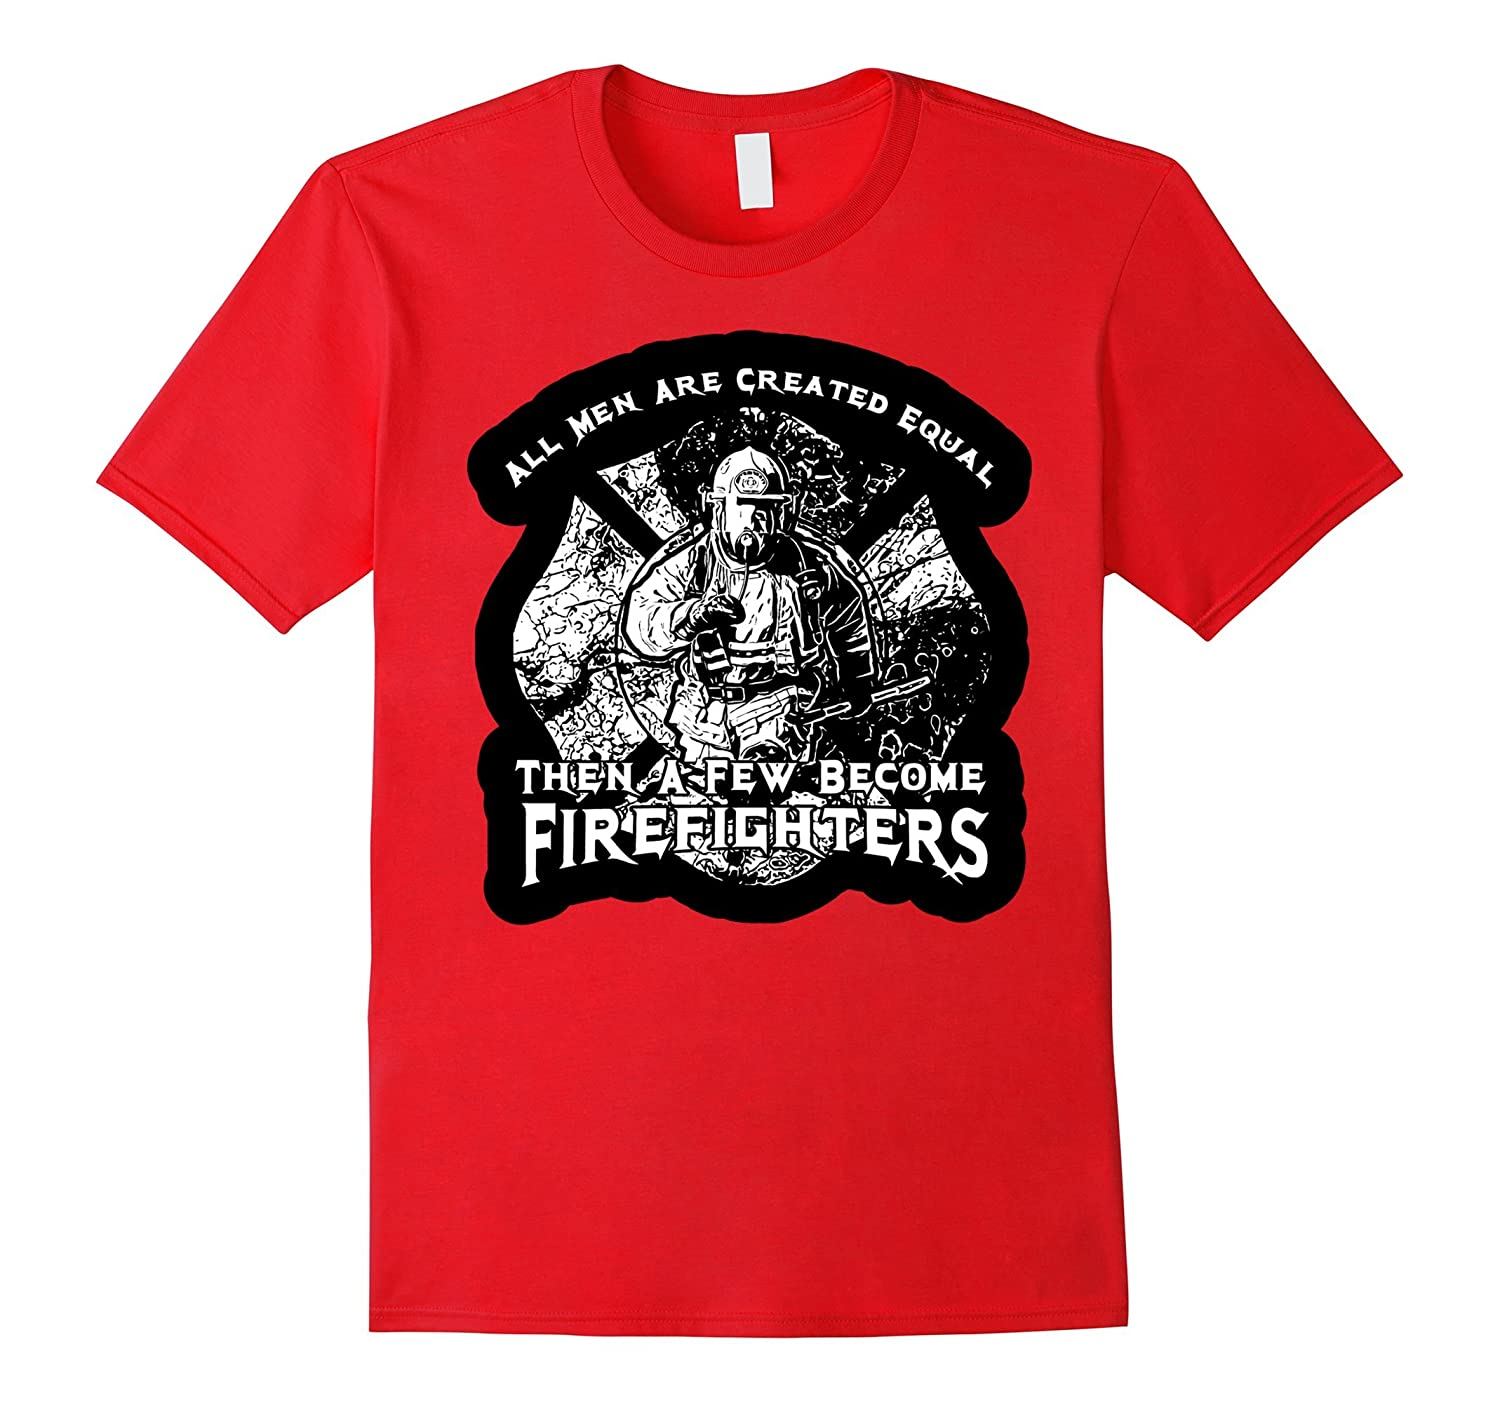 All Men Are Created Equal Then Few Become Firefighters Shirt-CD